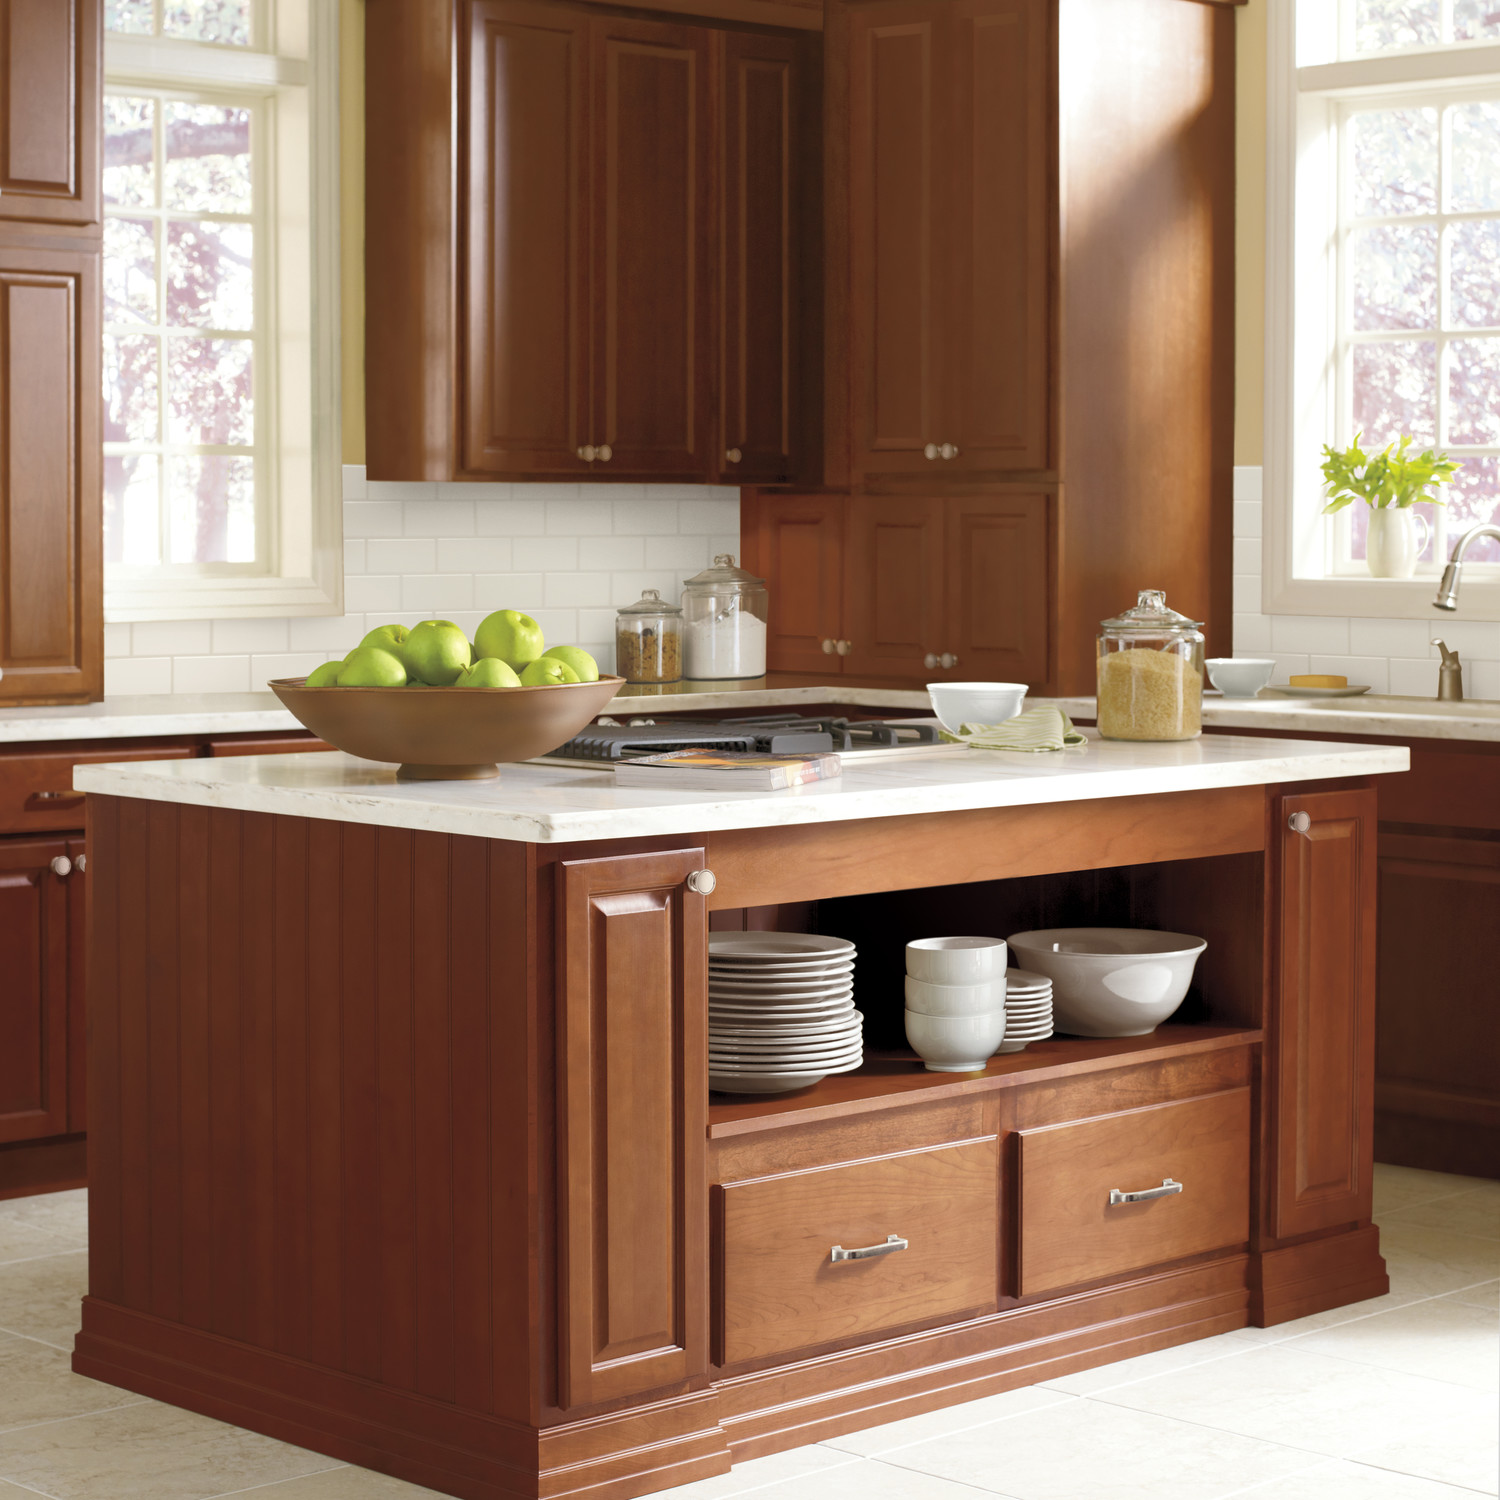 Shop Kitchen Cabinets: How To Seriously Deep Clean Your Kitchen Cabinets